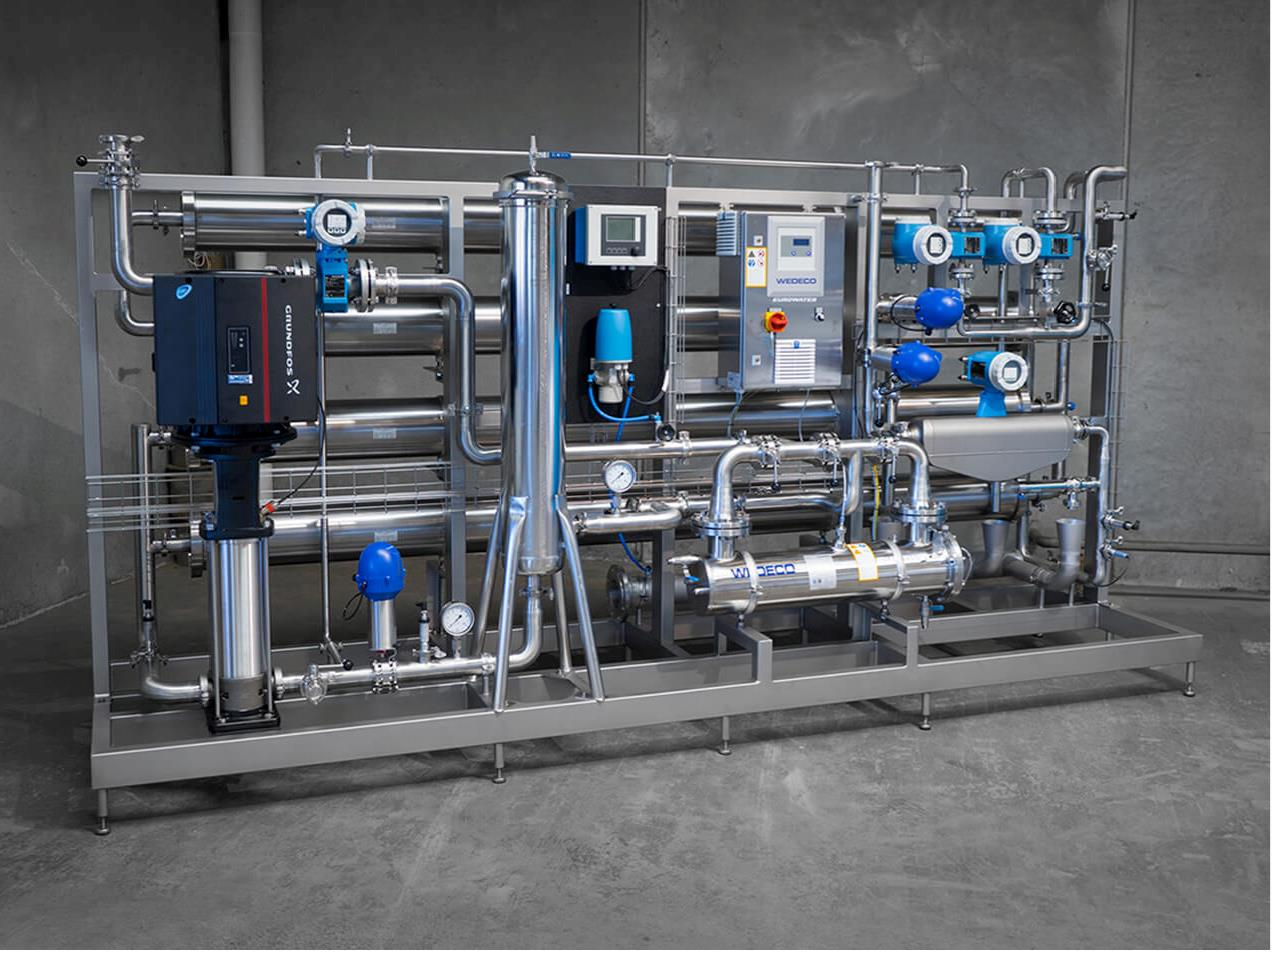 Reverse osmosis in stainless steel for a hygienic design